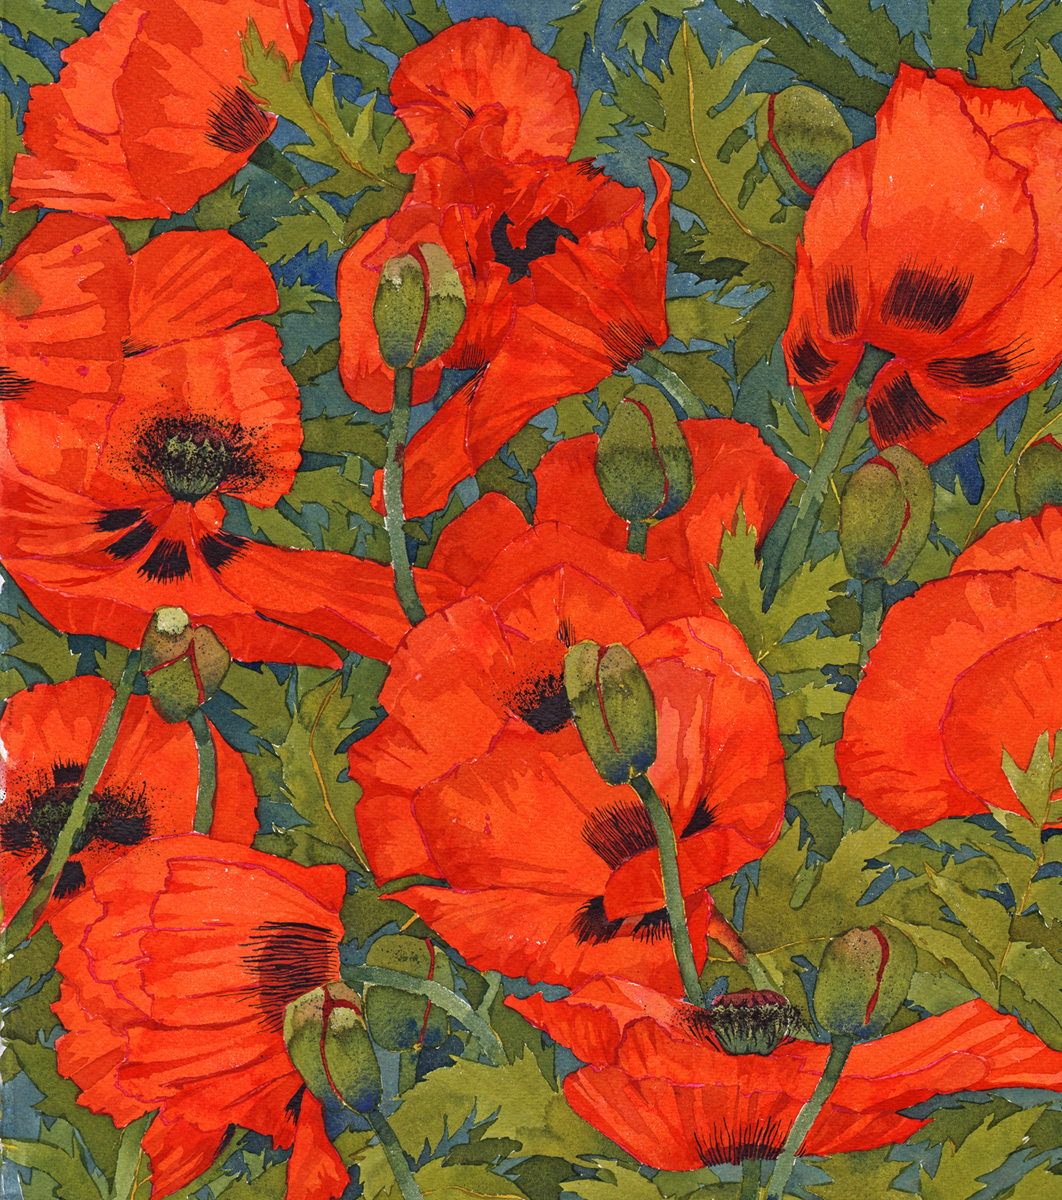 Oriental Poppies II image